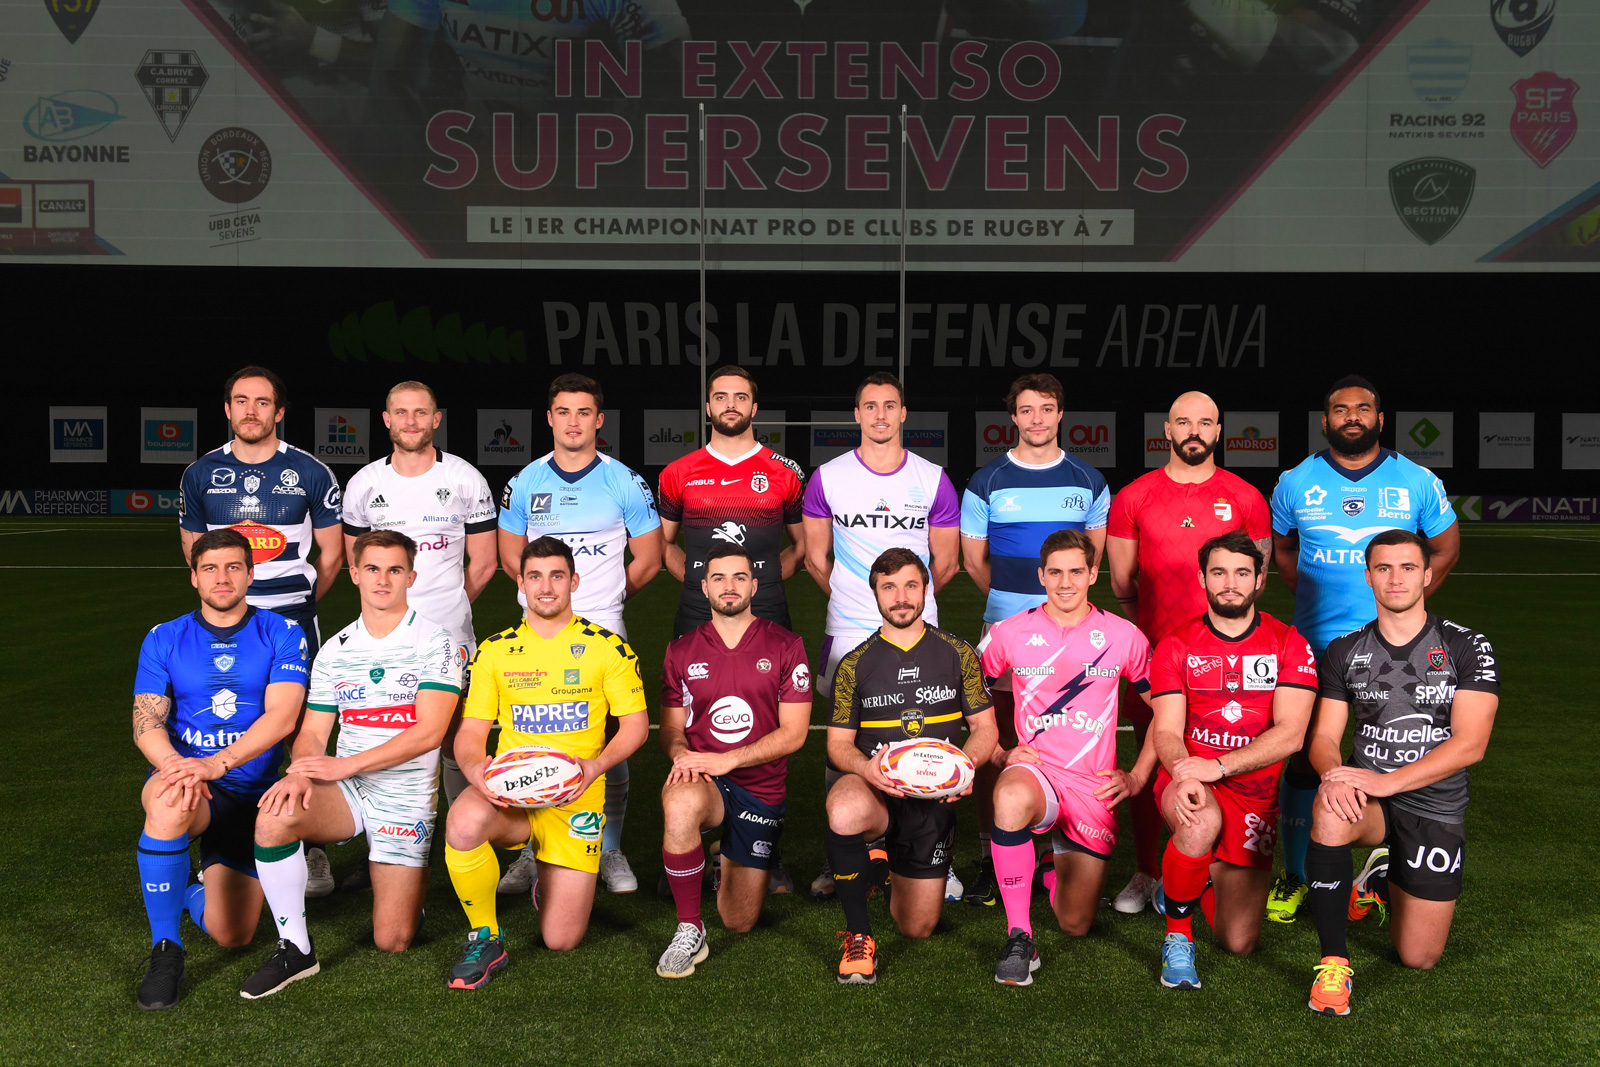 supersevens photo groupe